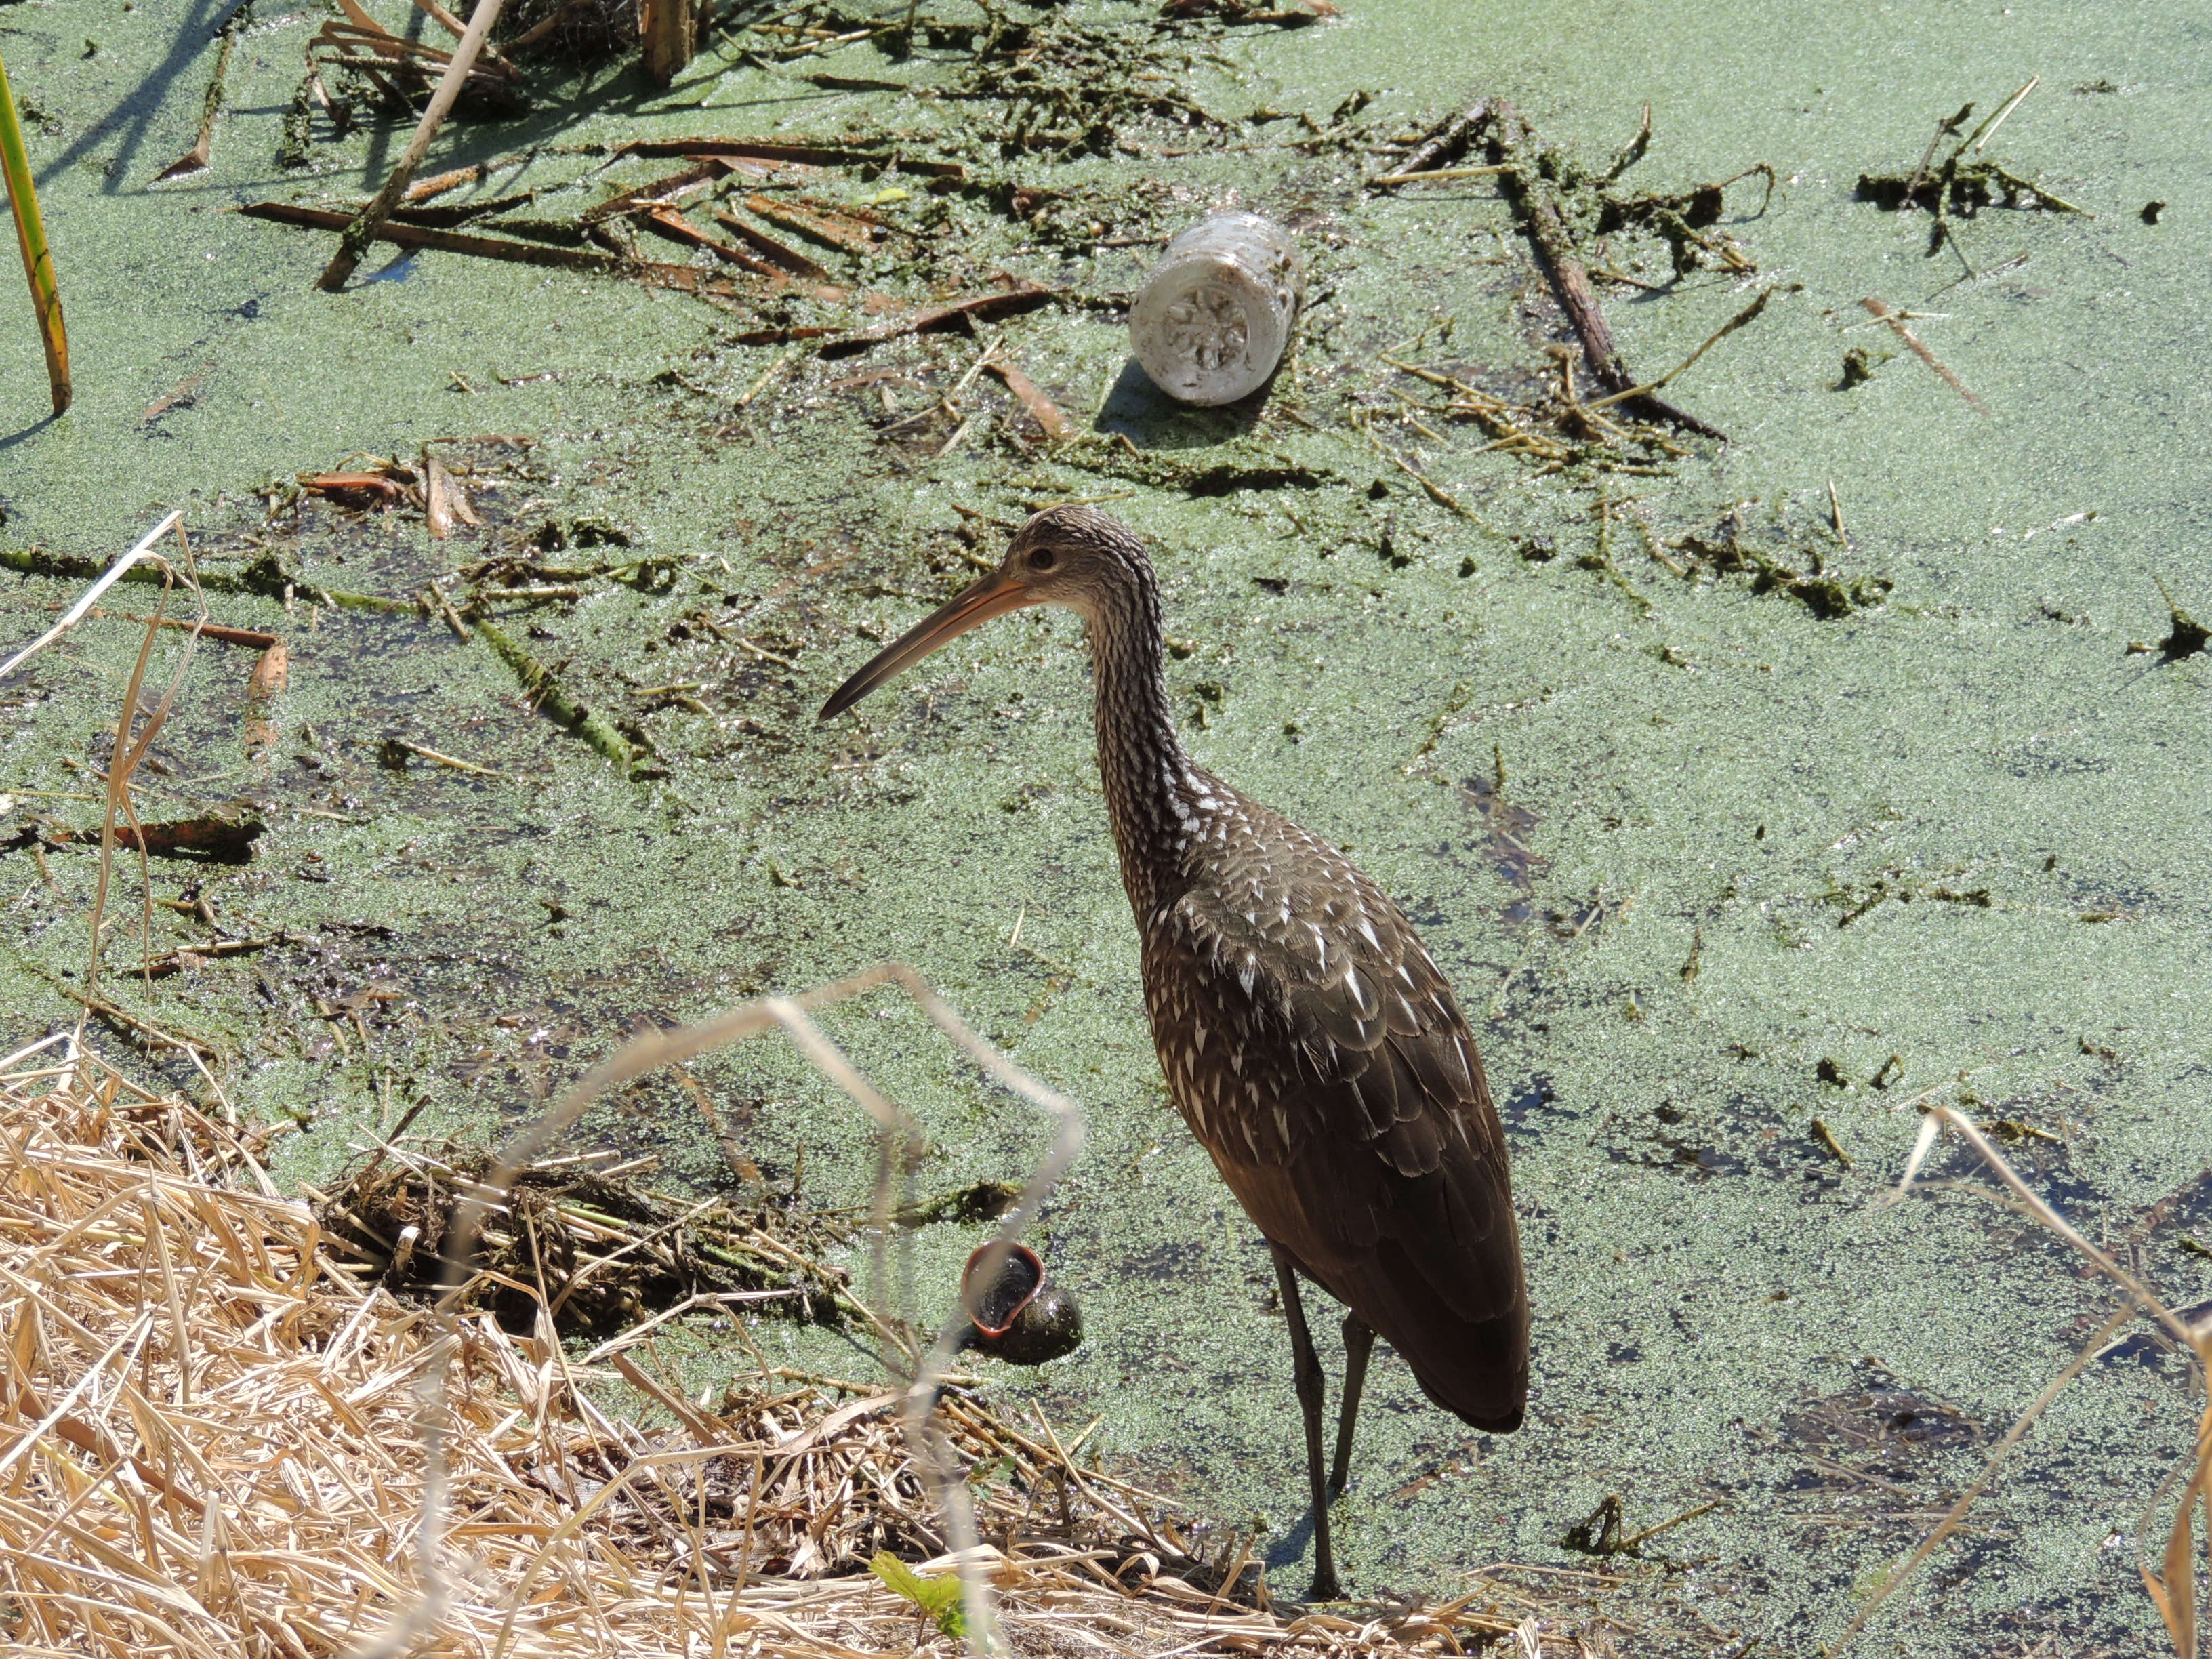 industrial pollution engagement the limpkin a poem and short essay